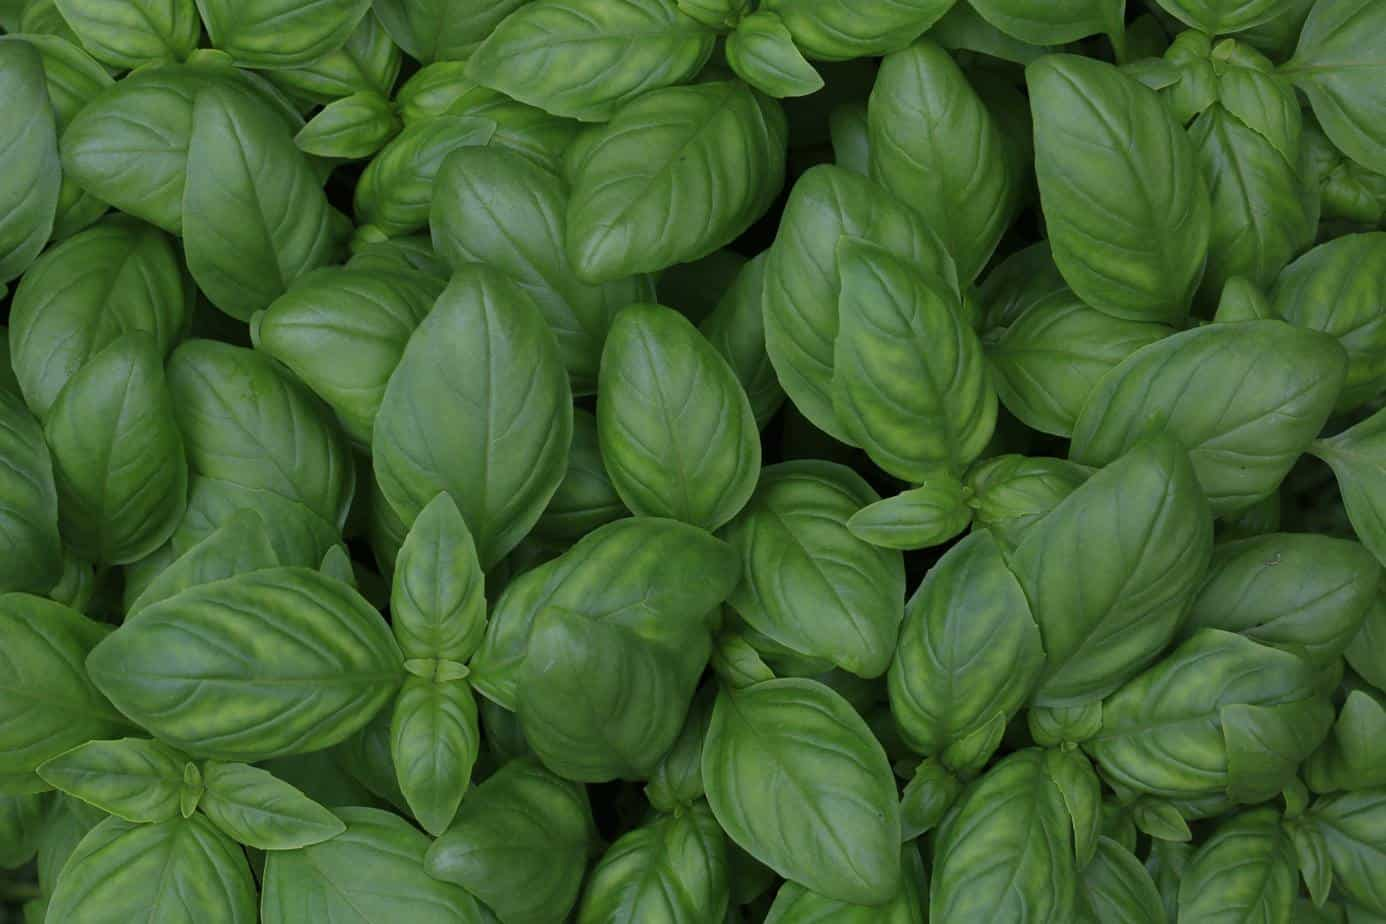 A bunch of basil leaves